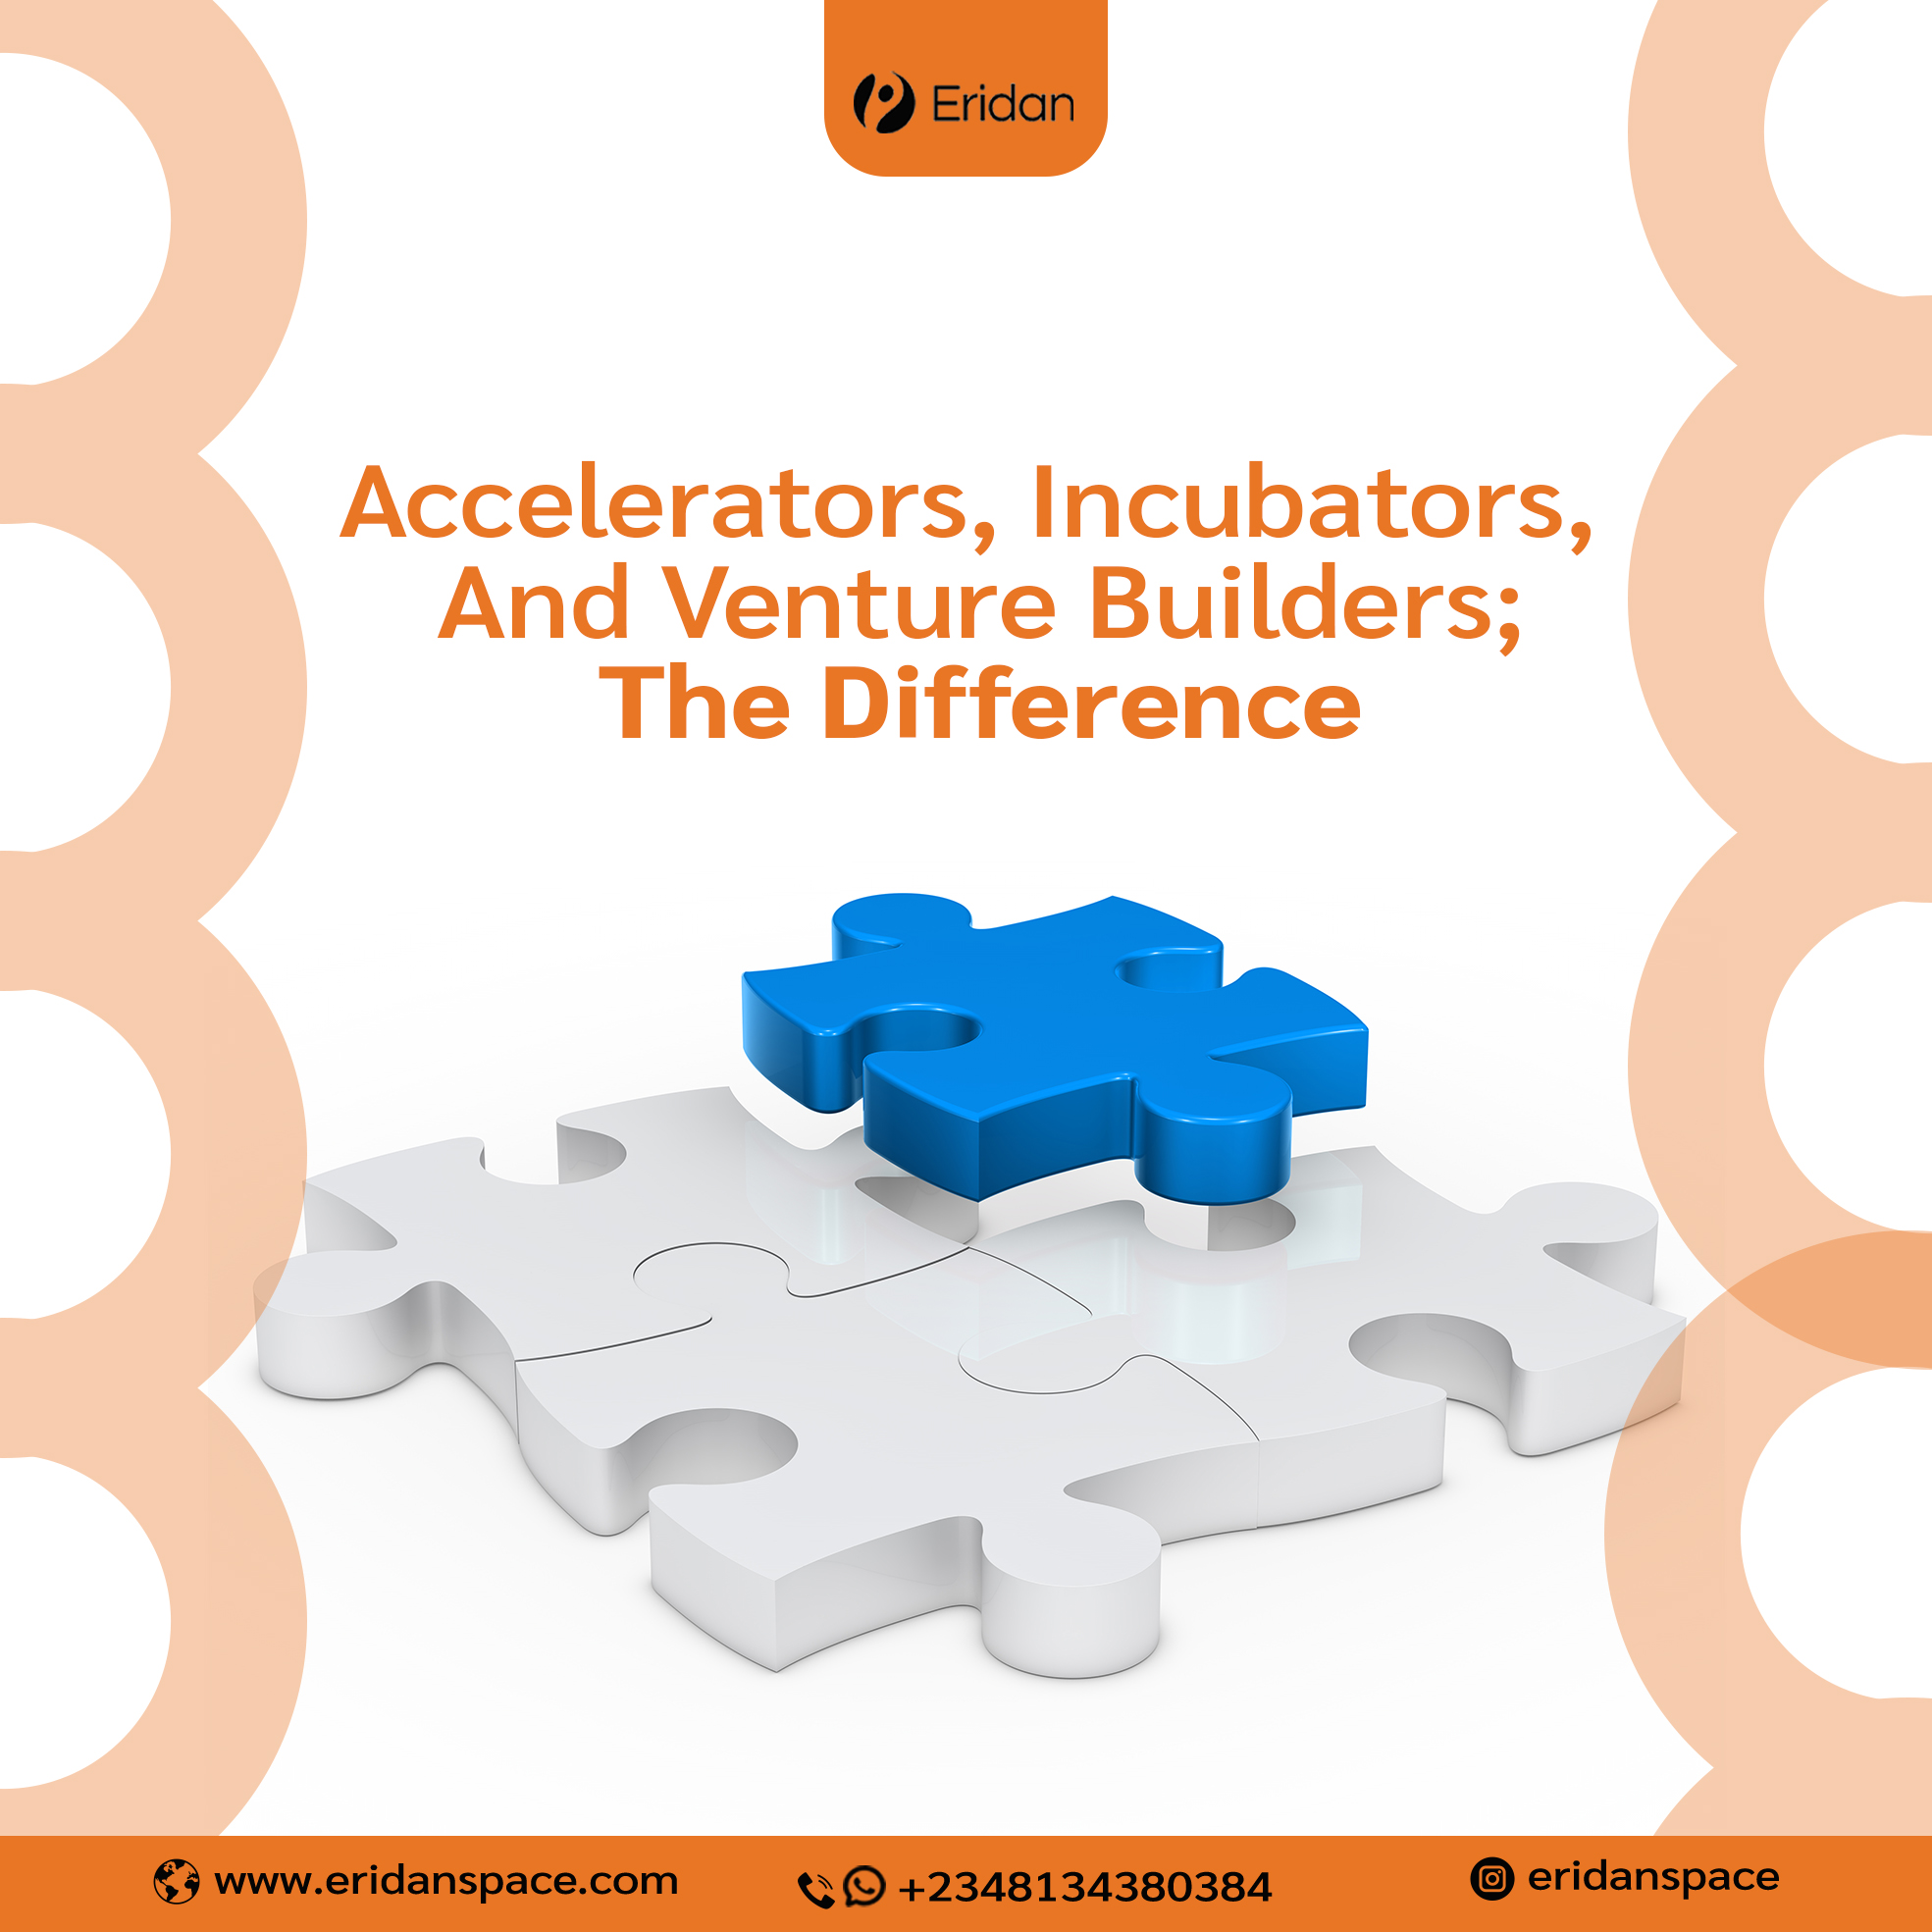 Accelerators, Incubators and Venture builders: The difference